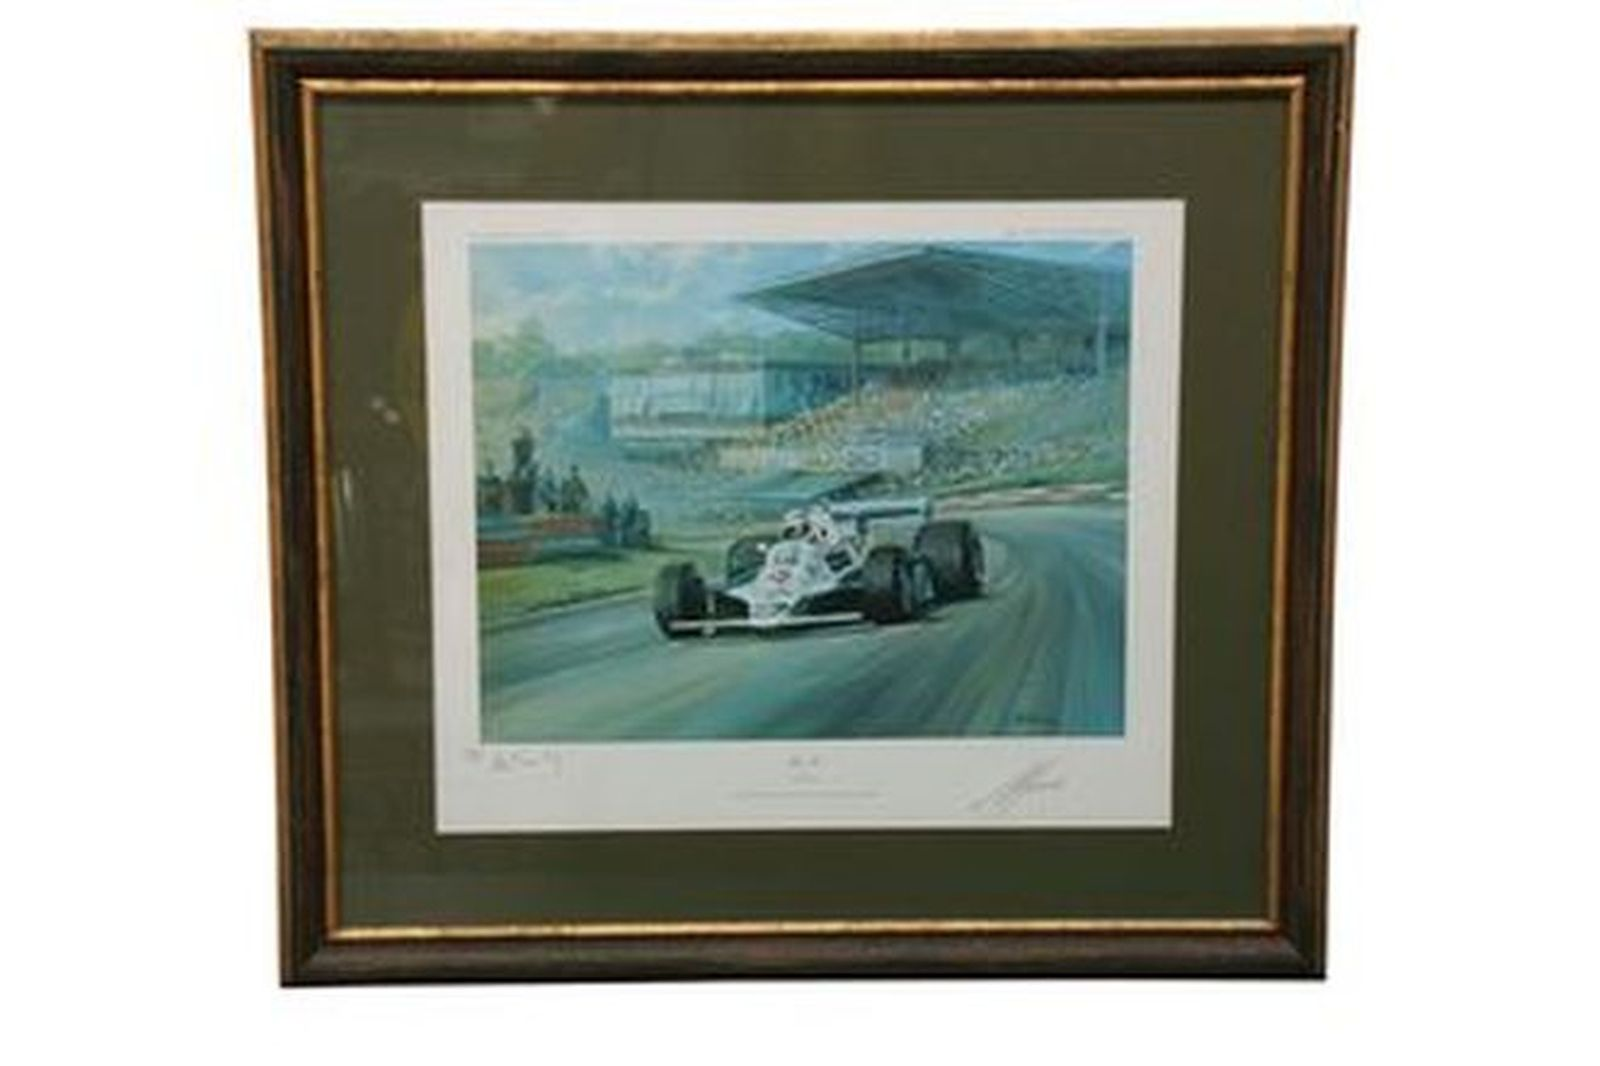 Framed Print - Alan Jones by Alan Fearnley No. 287/850  (Signed by Alan Jones & Artist)